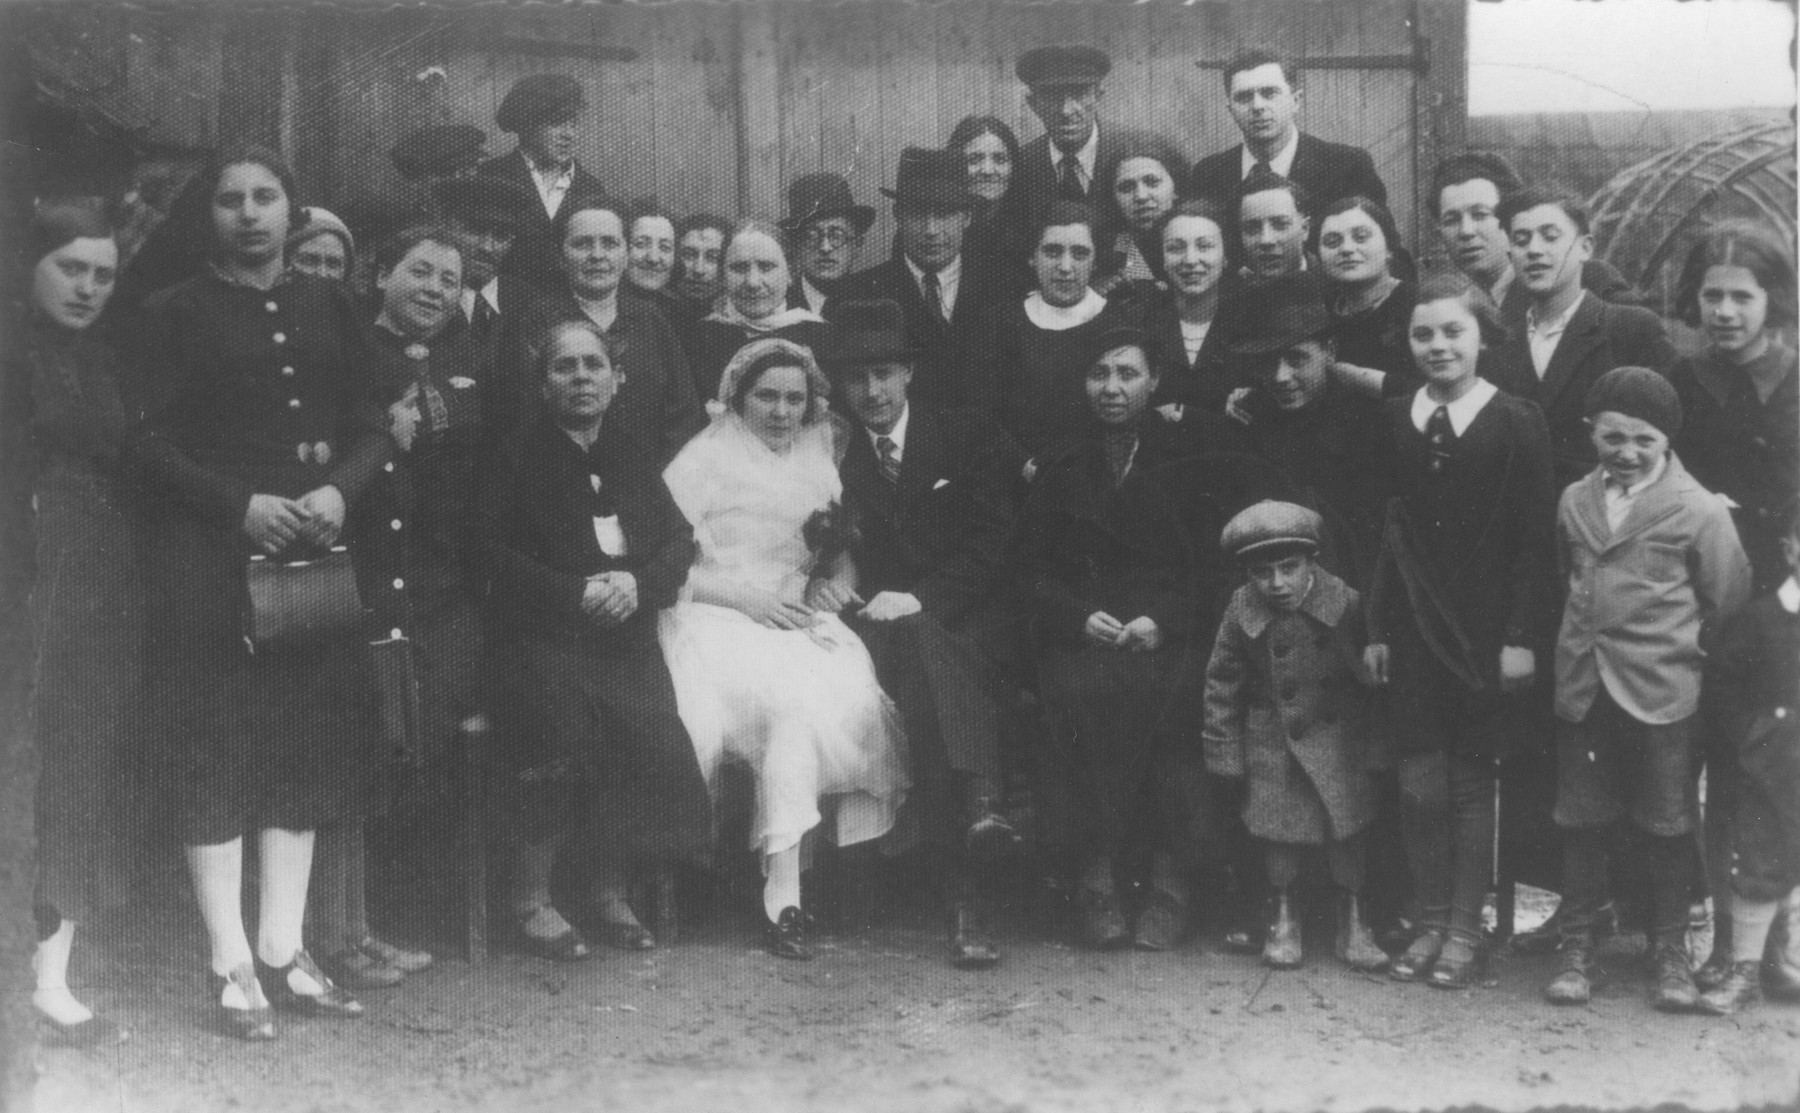 Family and friends pose with the bride and groom at a Jewish wedding in Telsiai, Lithuania.  The couple perished during World War II.